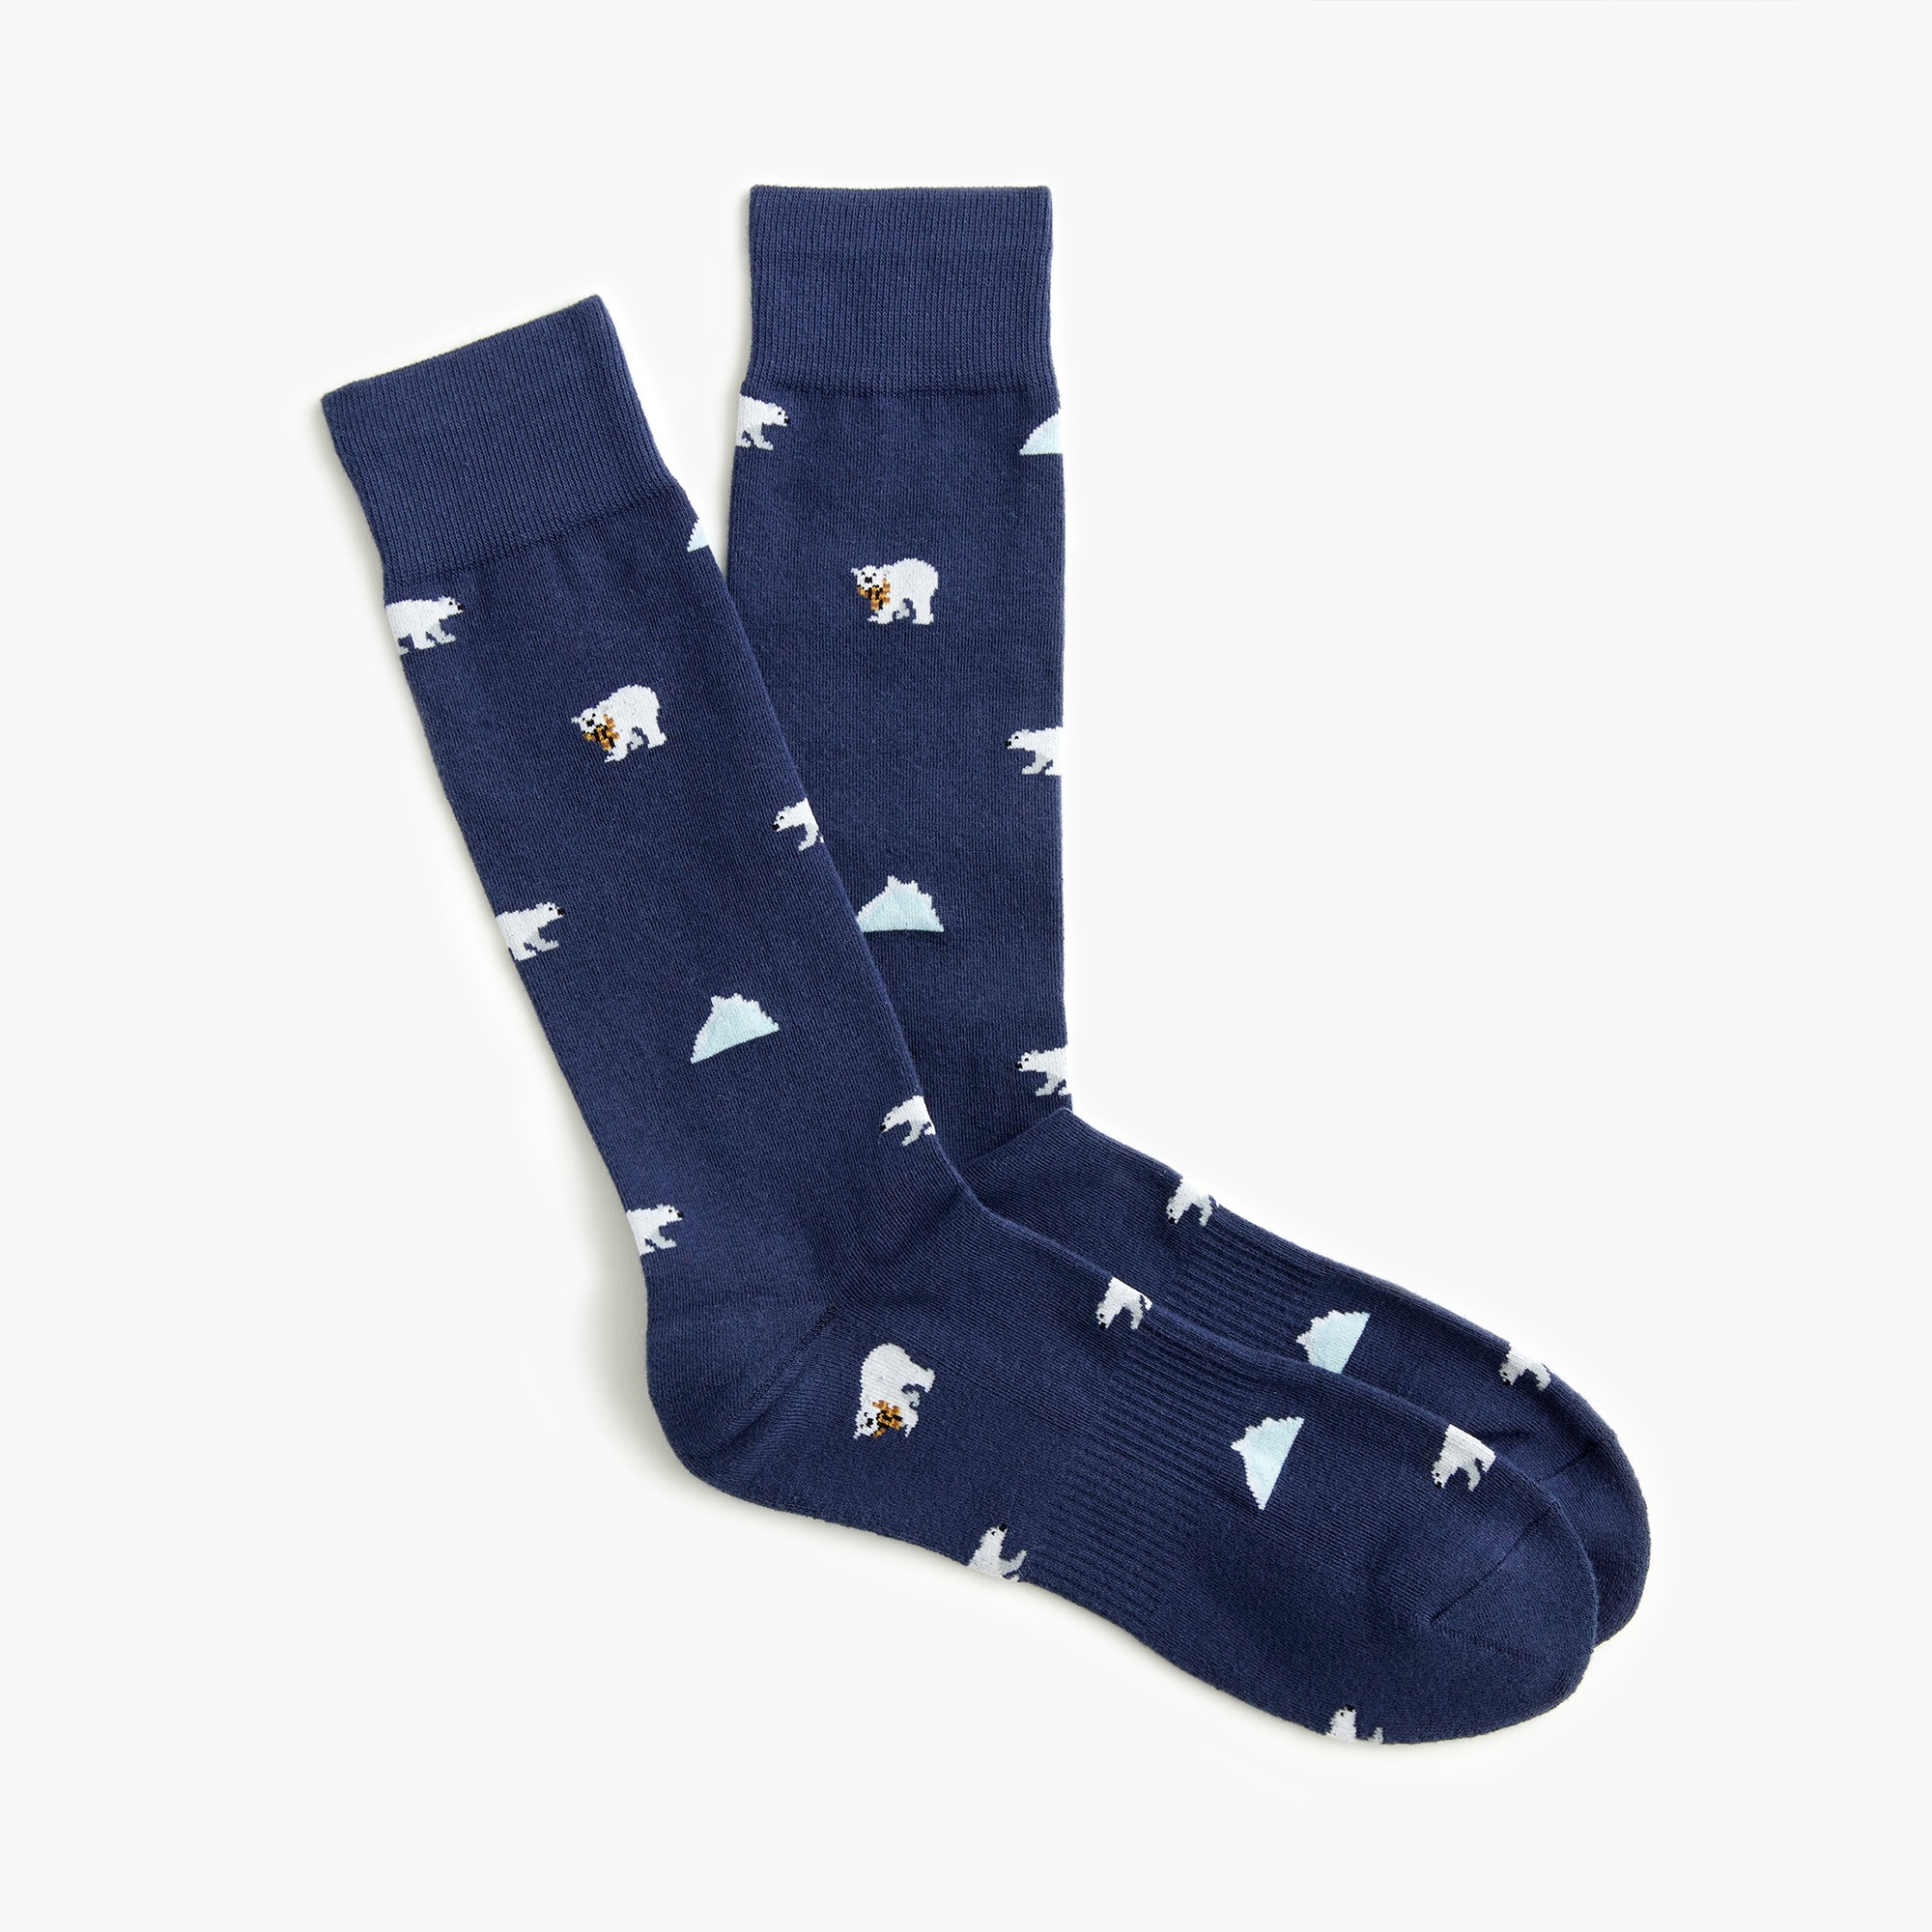 Image 1 for Polar bear print padded footbed socks